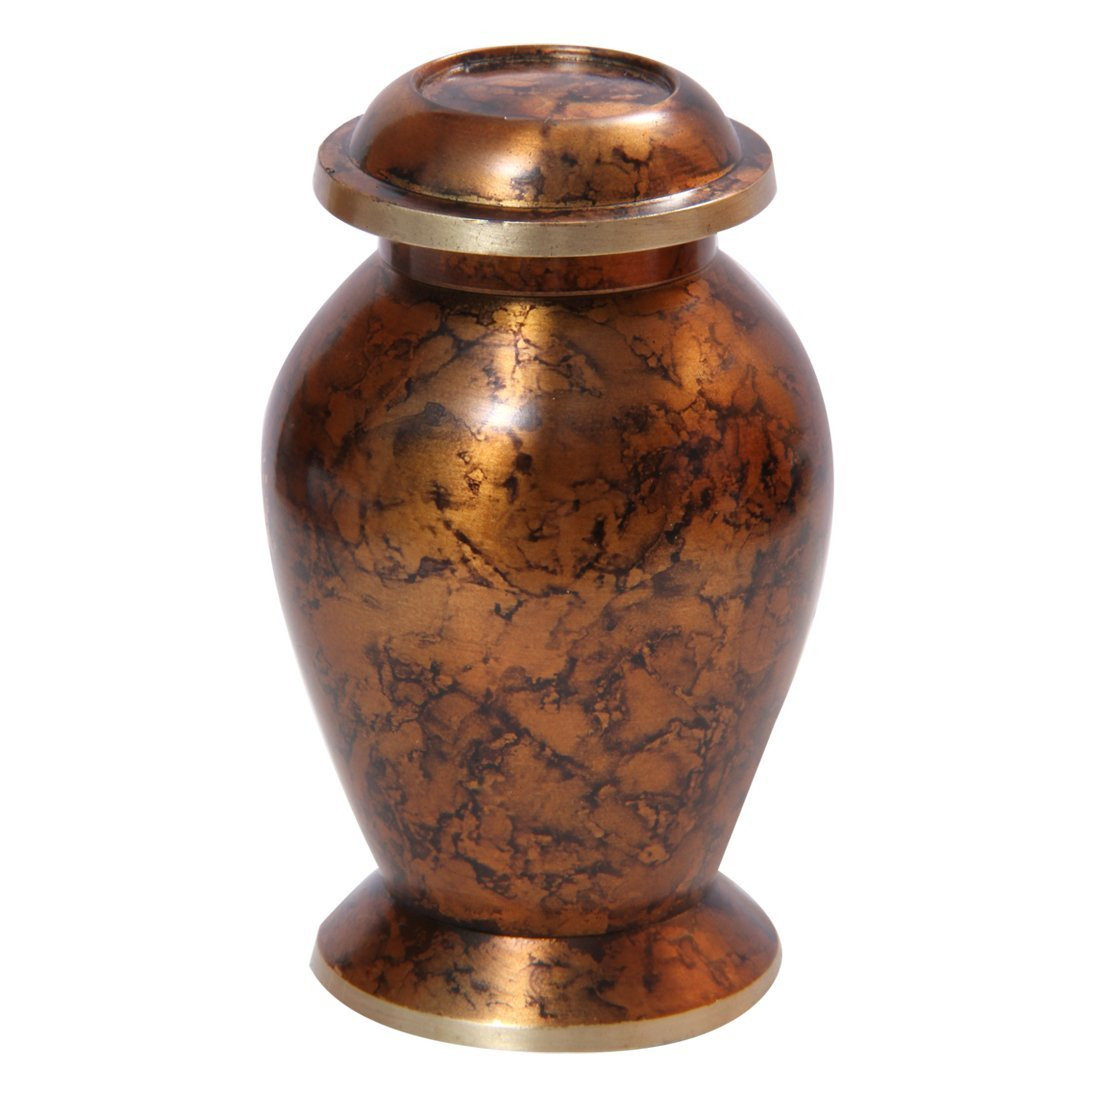 gold urn vase wholesale of cheap clay cremation urn find clay cremation urn deals on line at regarding plain clay brown small keepsake urn for ashes personalised cremation urns